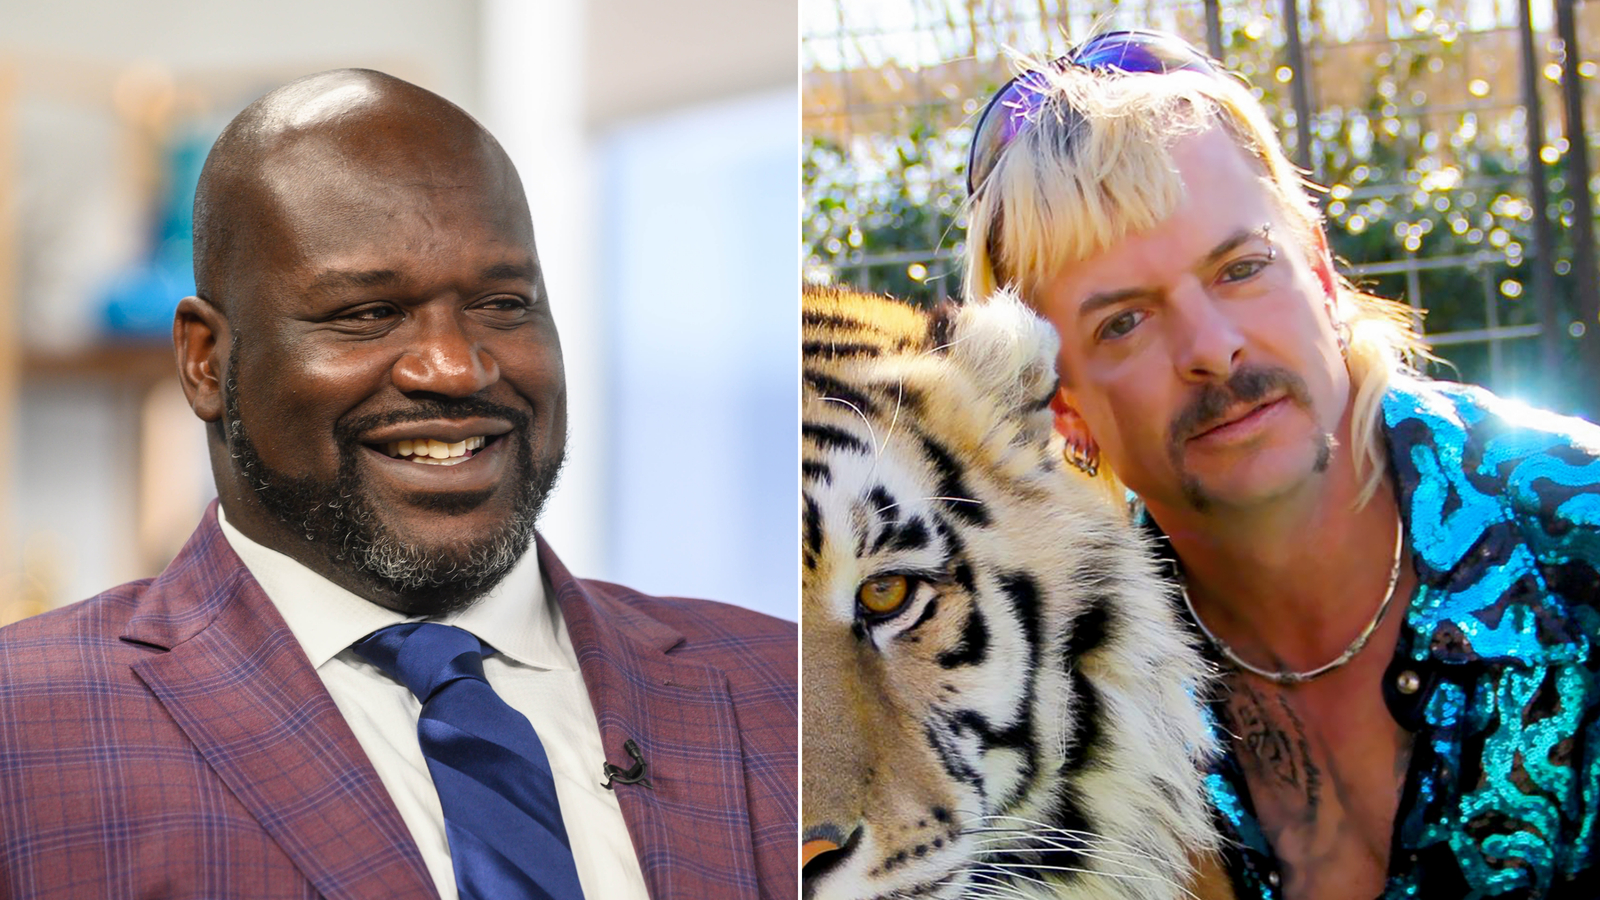 'Tiger King:' Shaquille O'Neal explains his cameo